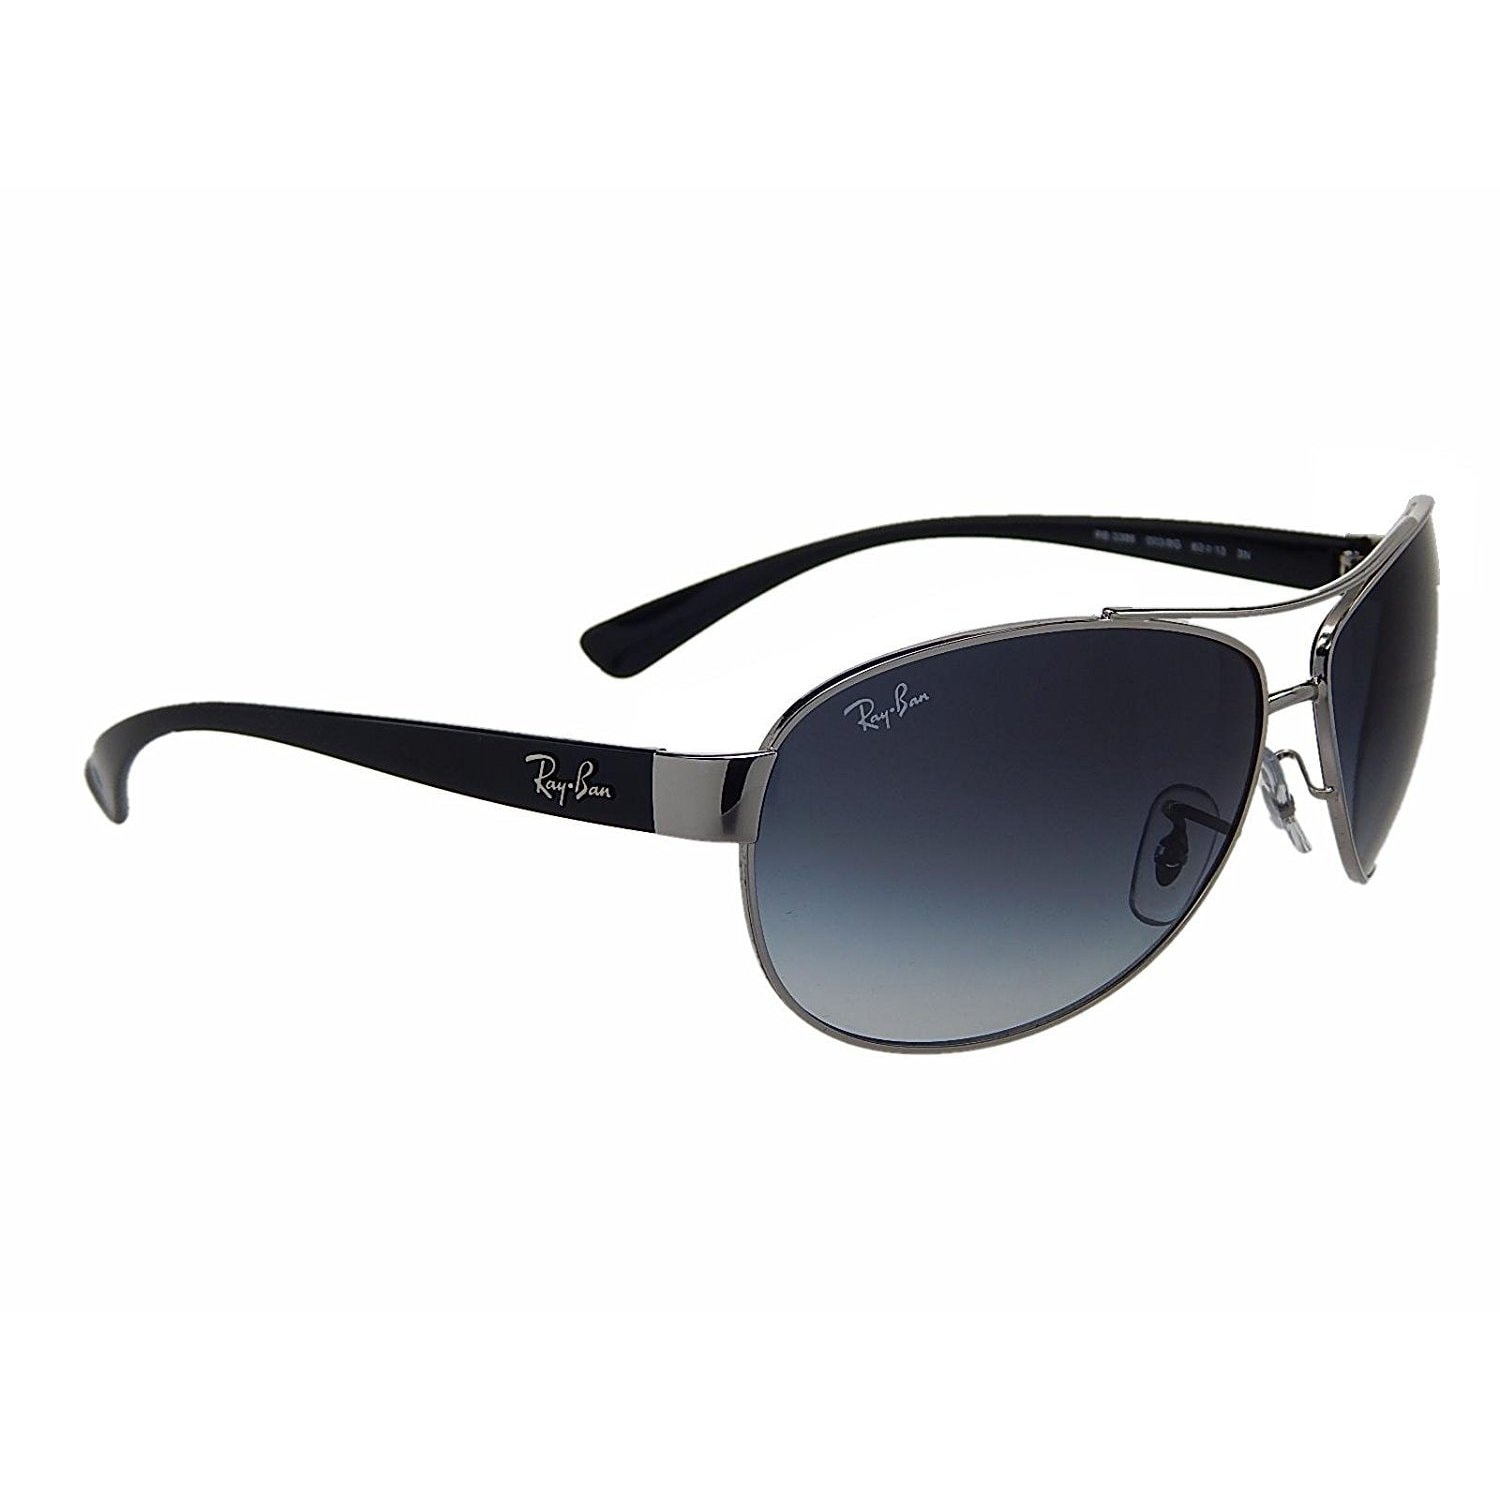 4c3a2d2b3ac Shop Ray-Ban RB3386 003 8G Silver Black Frame Grey Gradient 67mm Lens  Sunglasses - Free Shipping Today - Overstock - 14327958